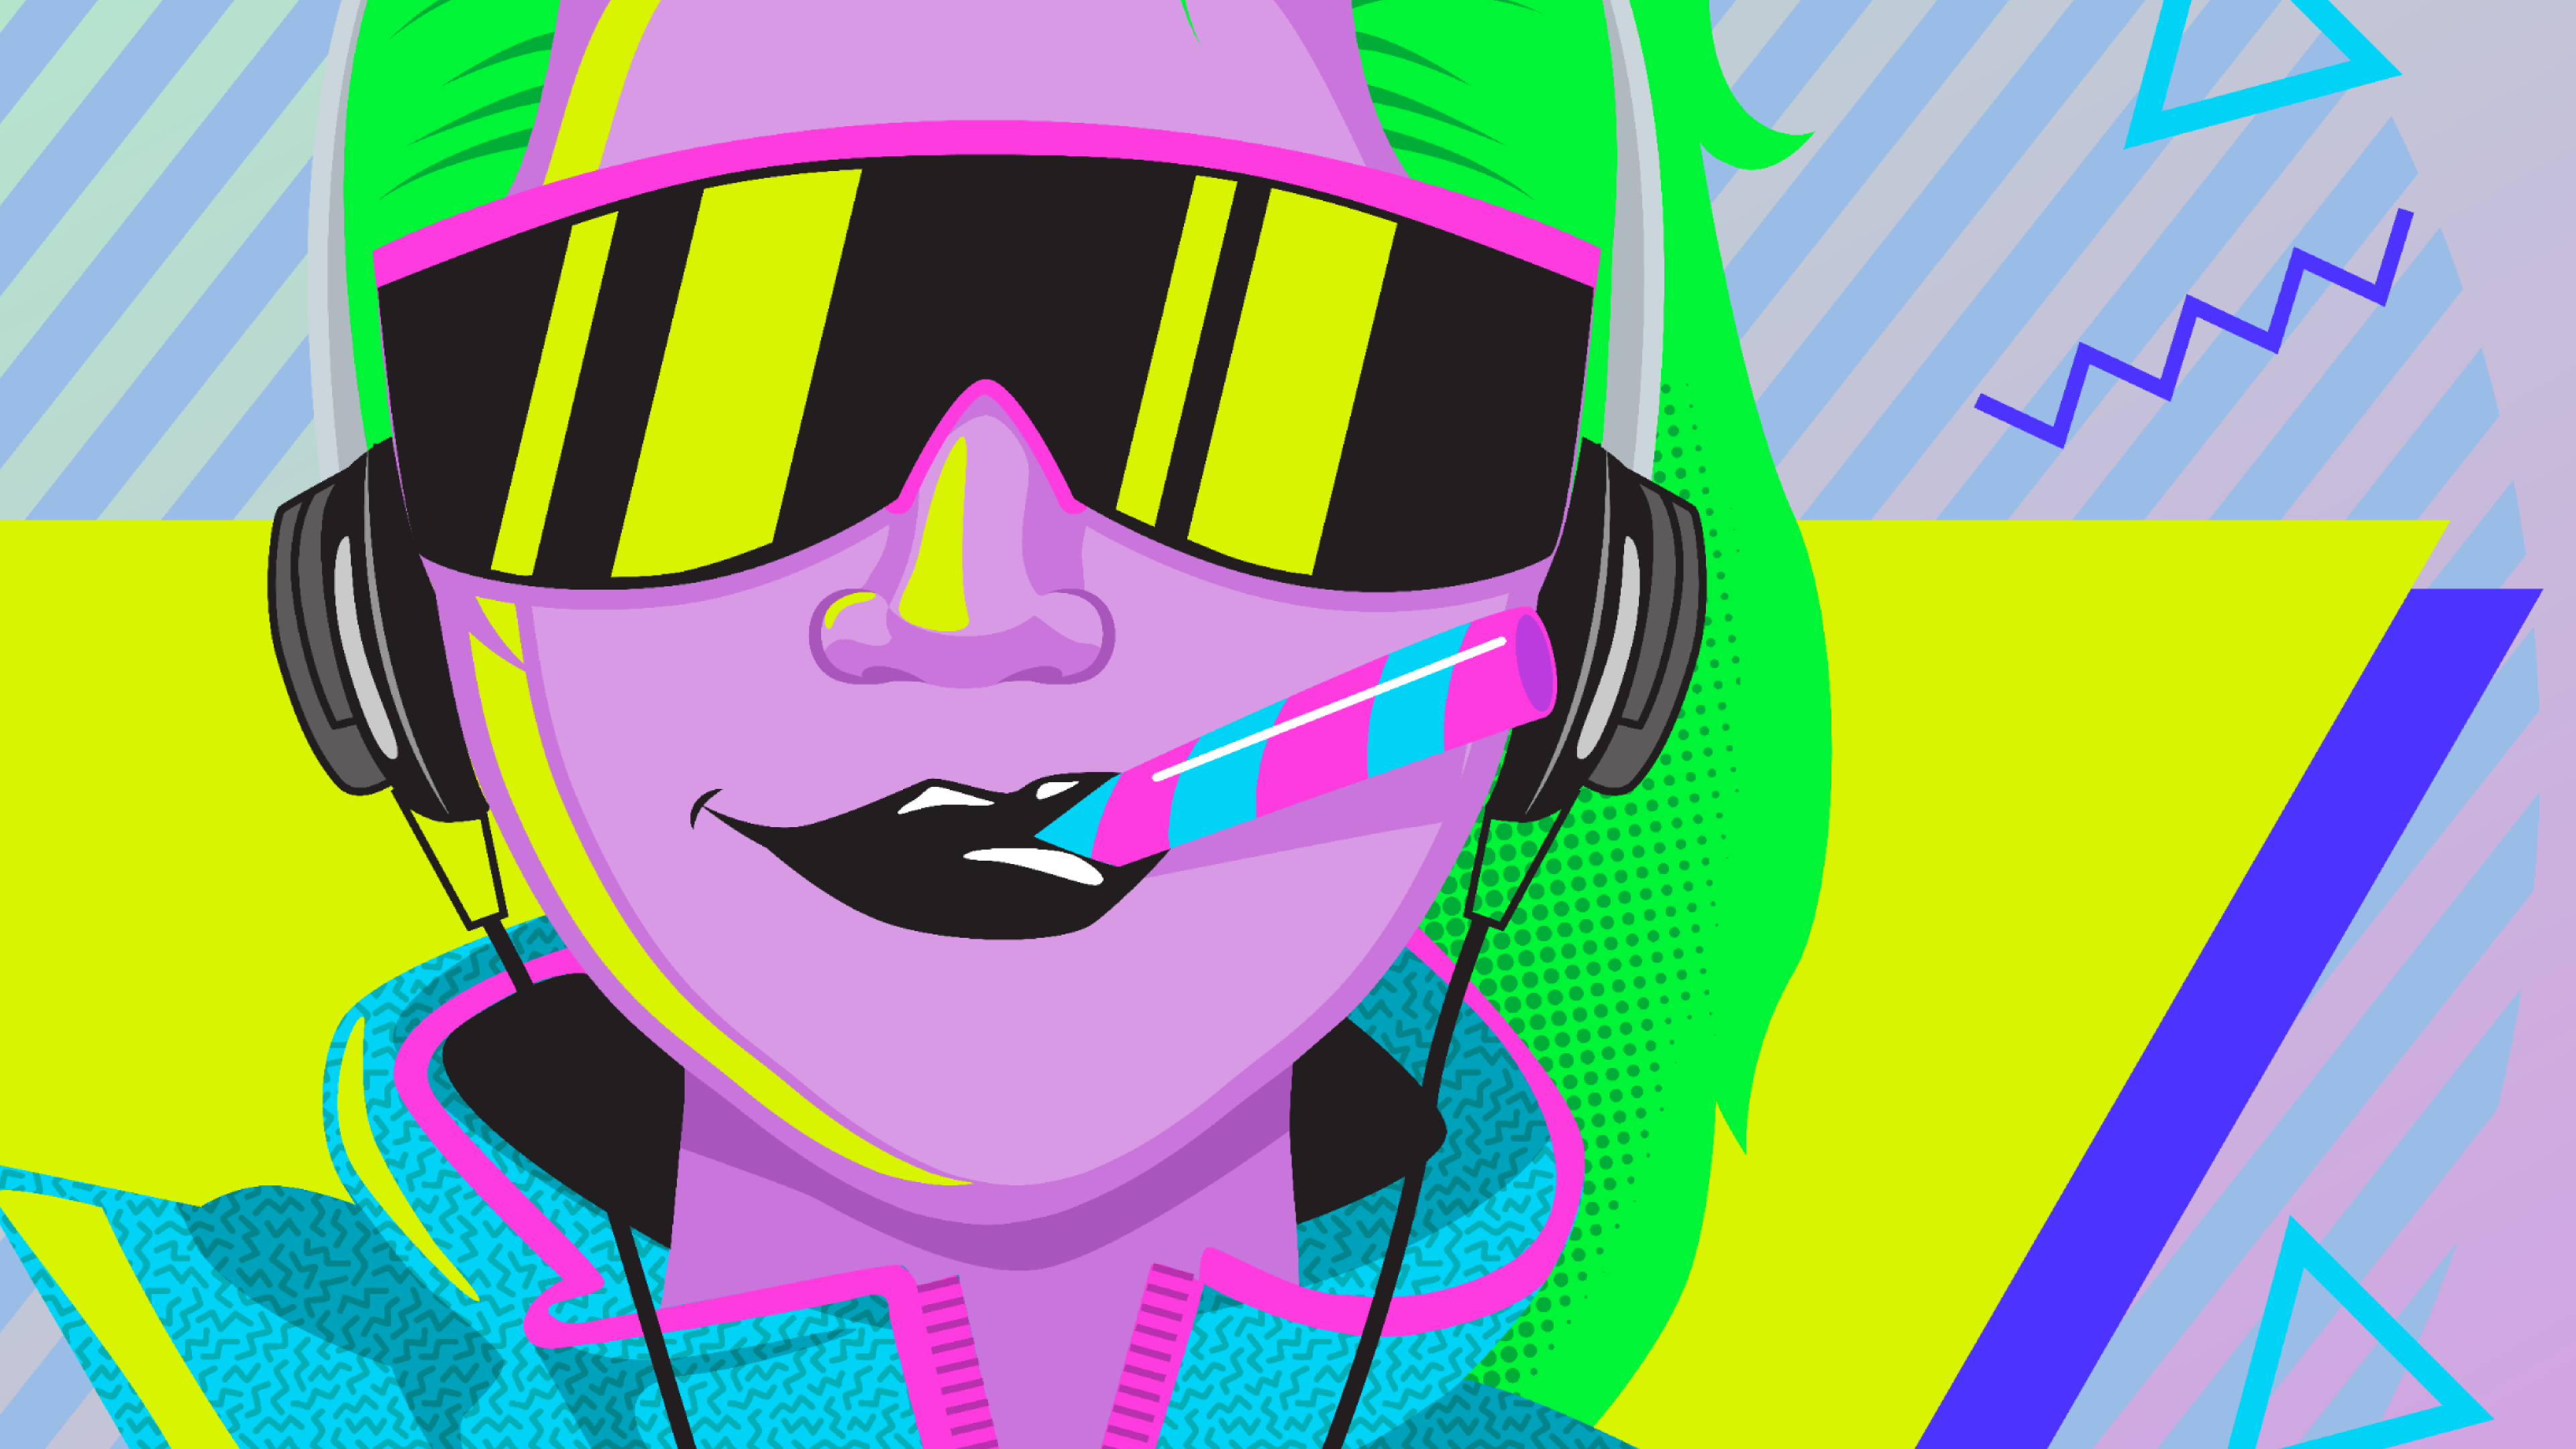 80s girl with green hair wearing sunglasses and smiling about RealToughCandy.io affiliate program